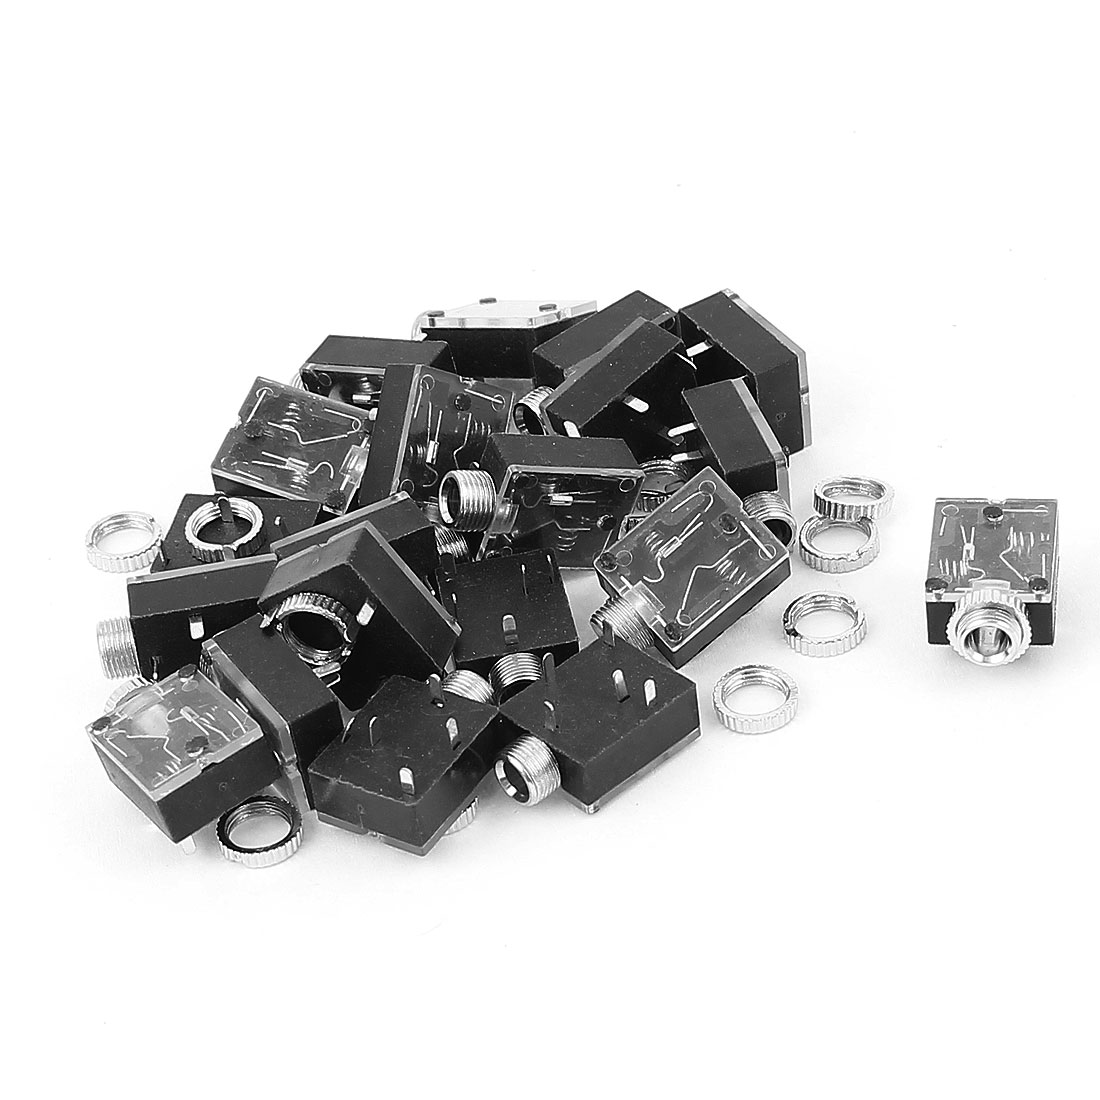 18pcs 5Pin 3.5mm Female Stereo Audio Jack PCB Mount Connector